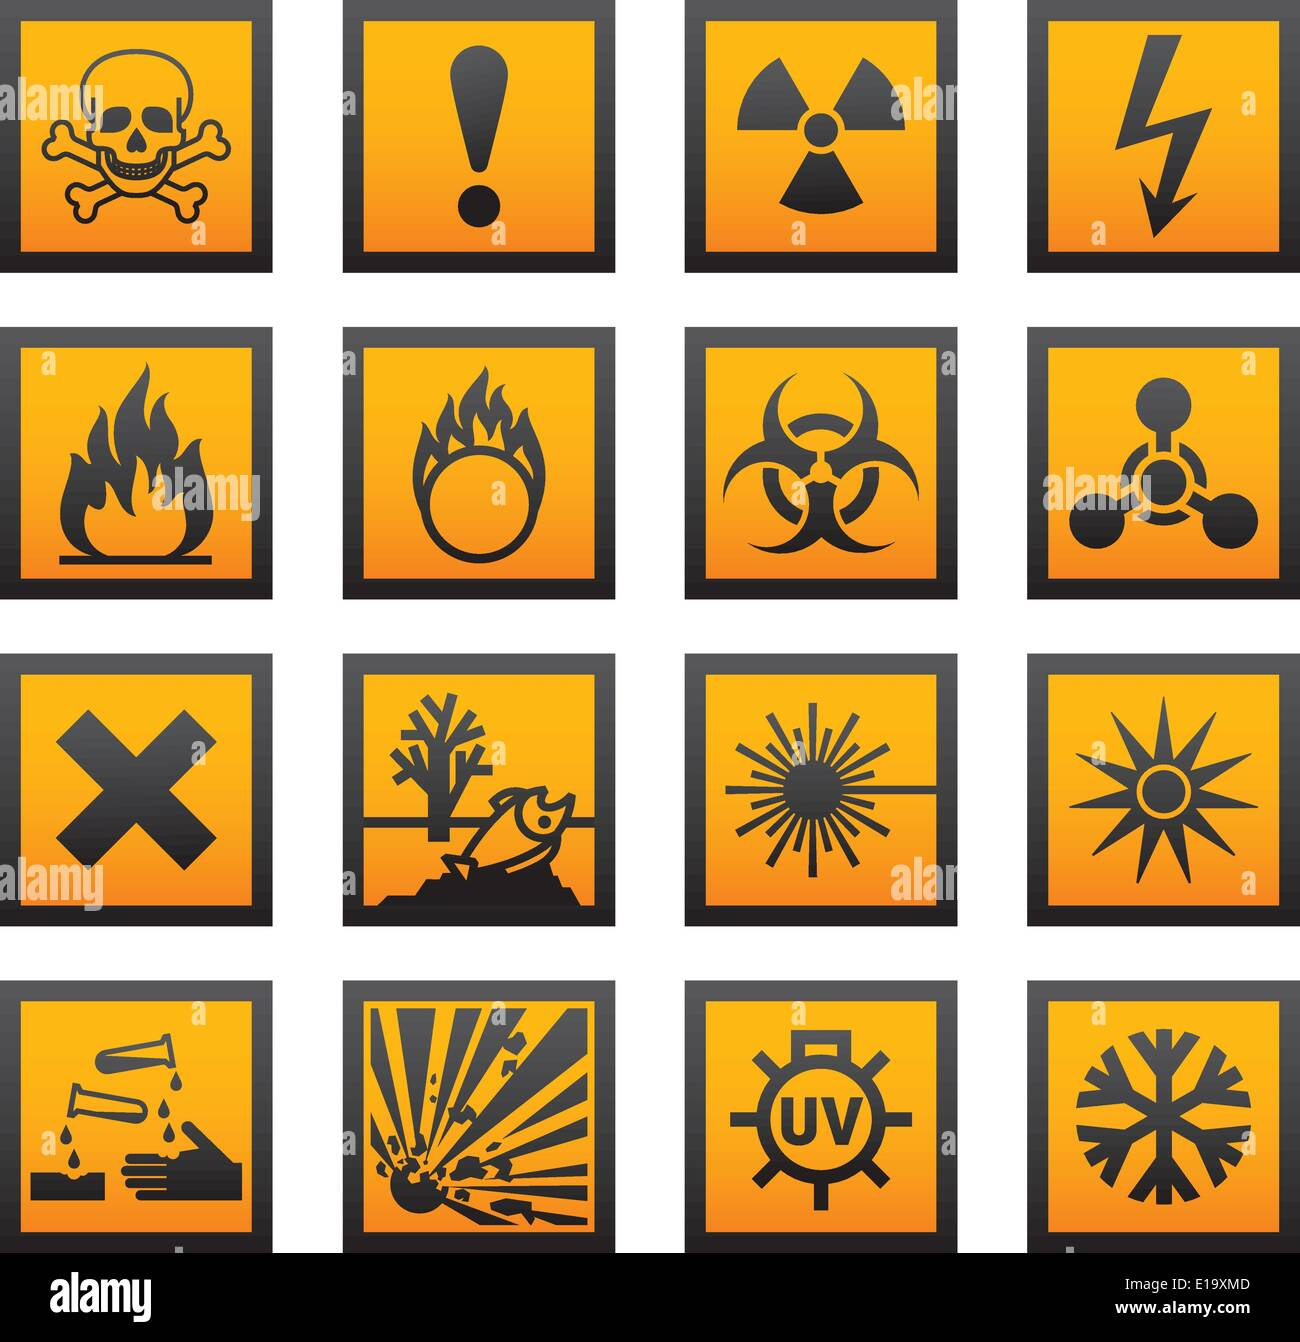 European Hazard Symbols Stock Vector Art Amp Illustration